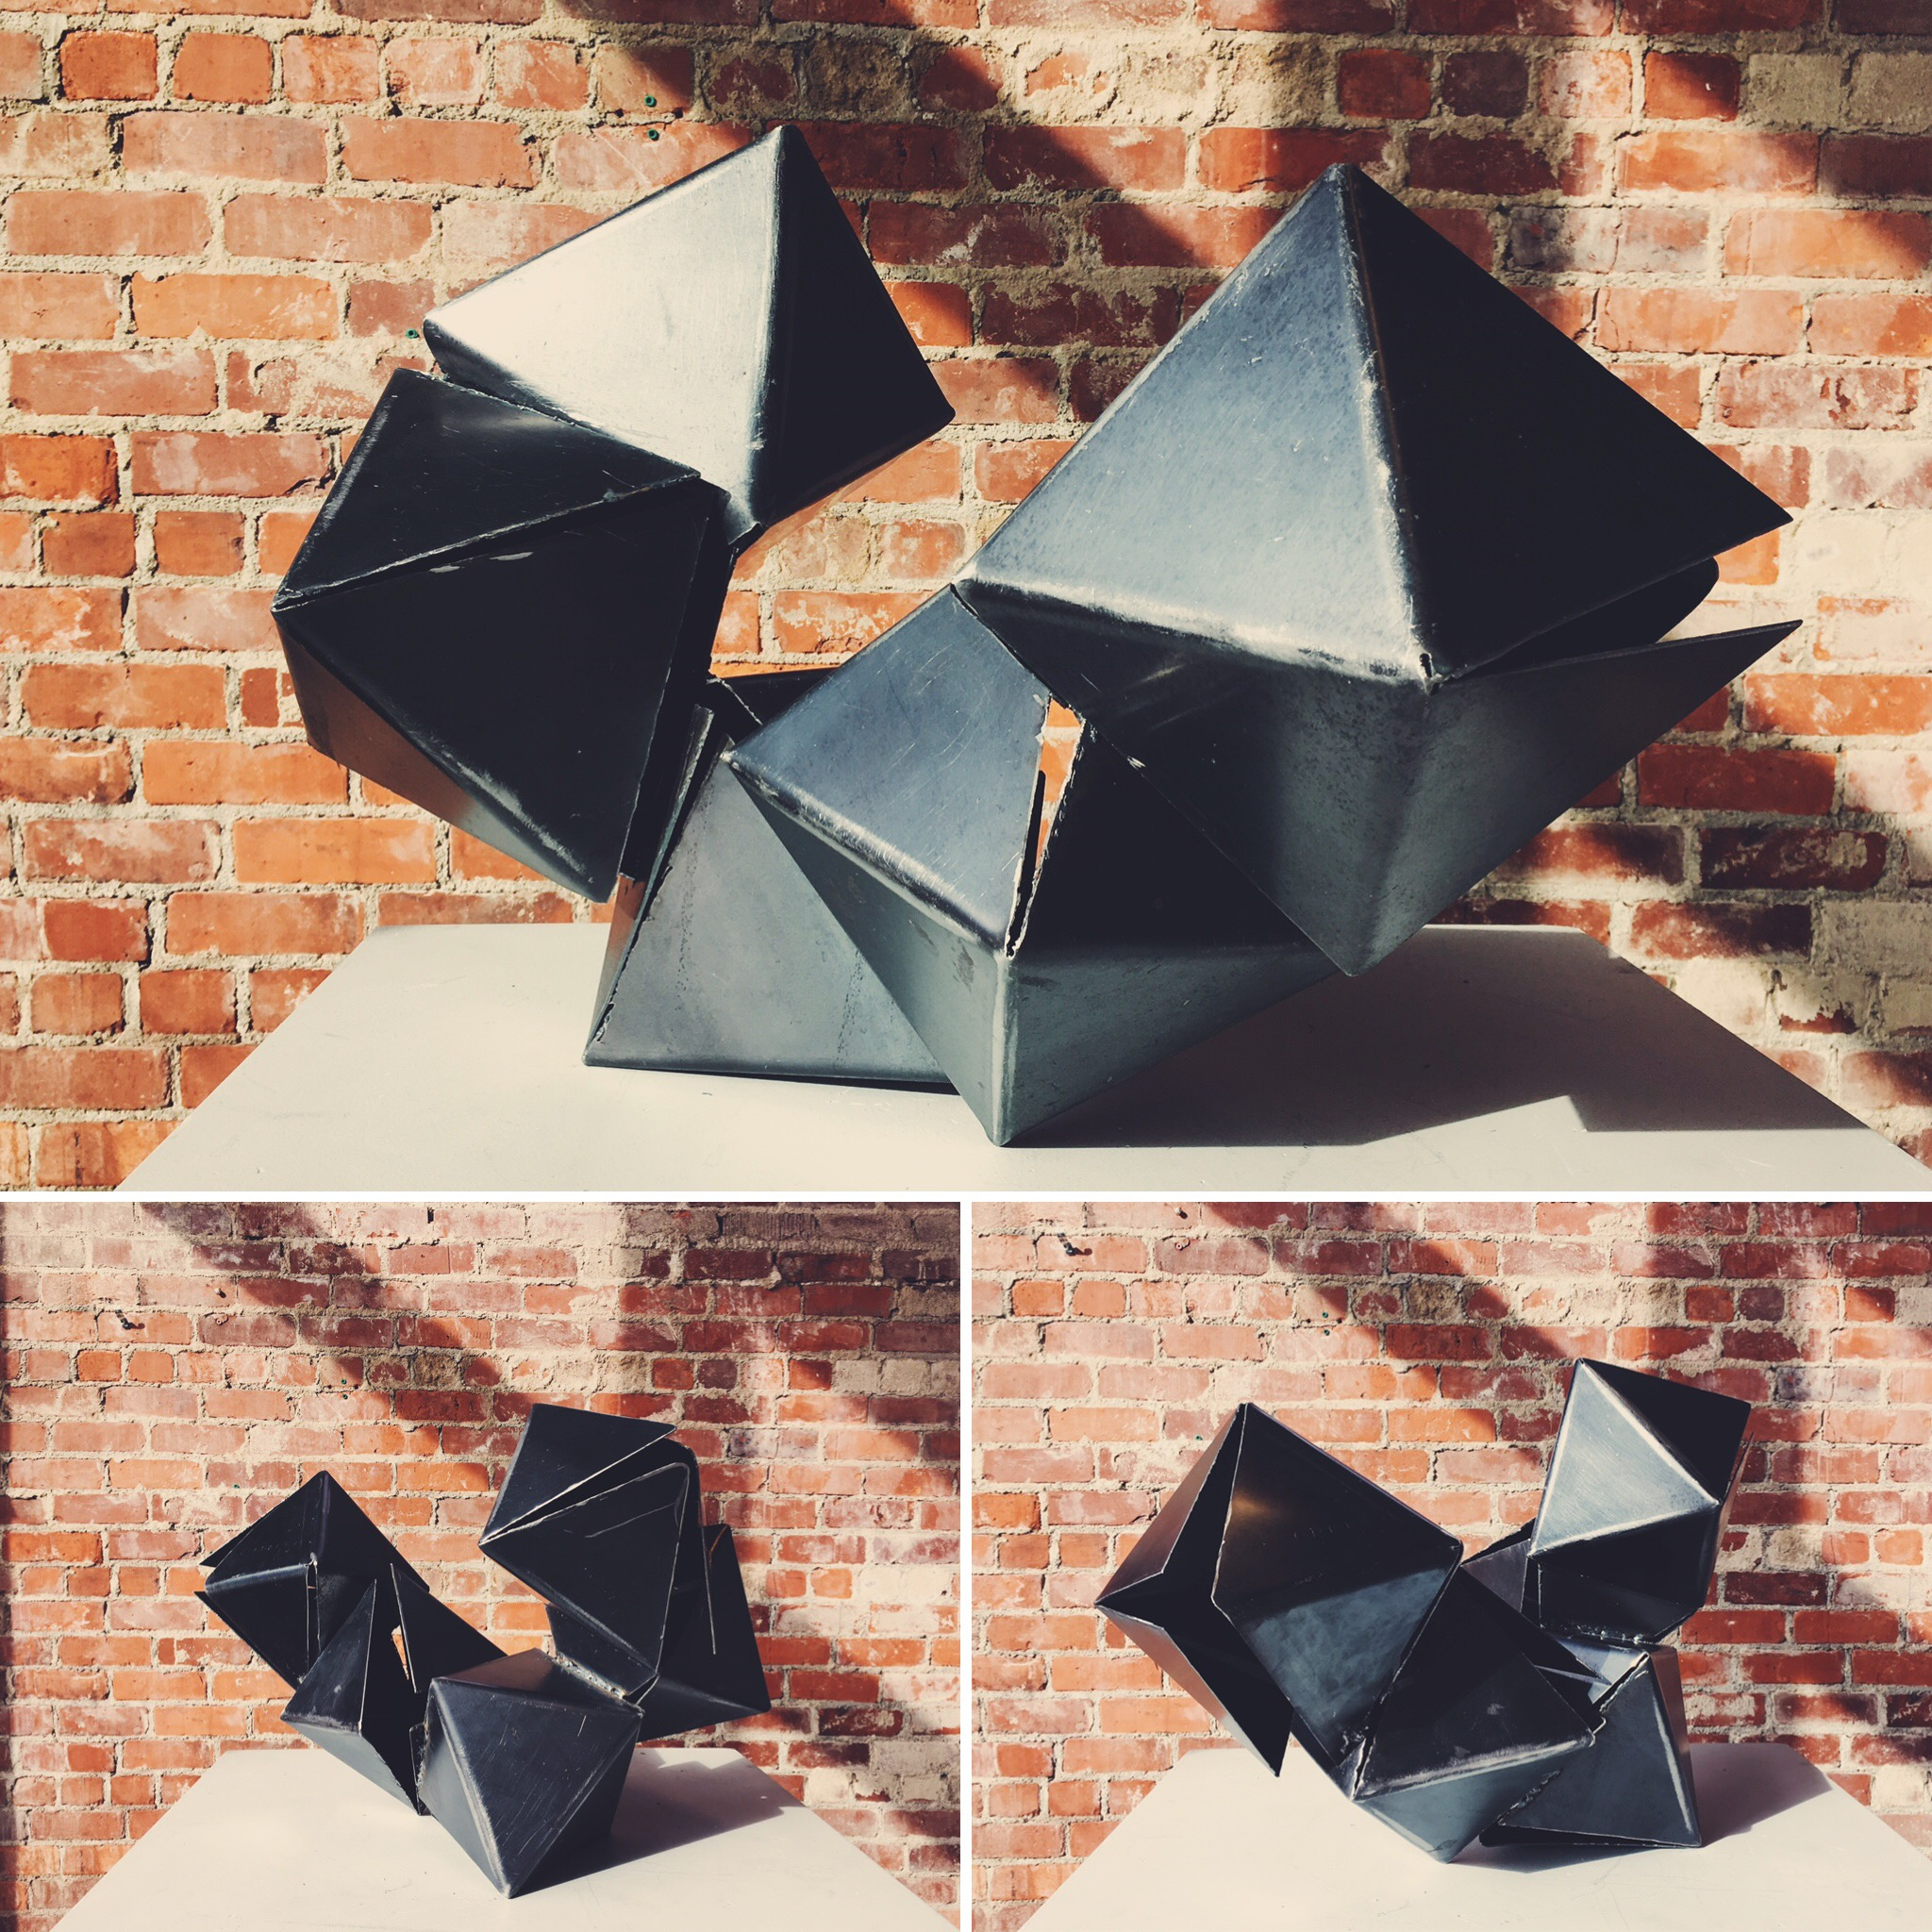 Octahedron Arrangement